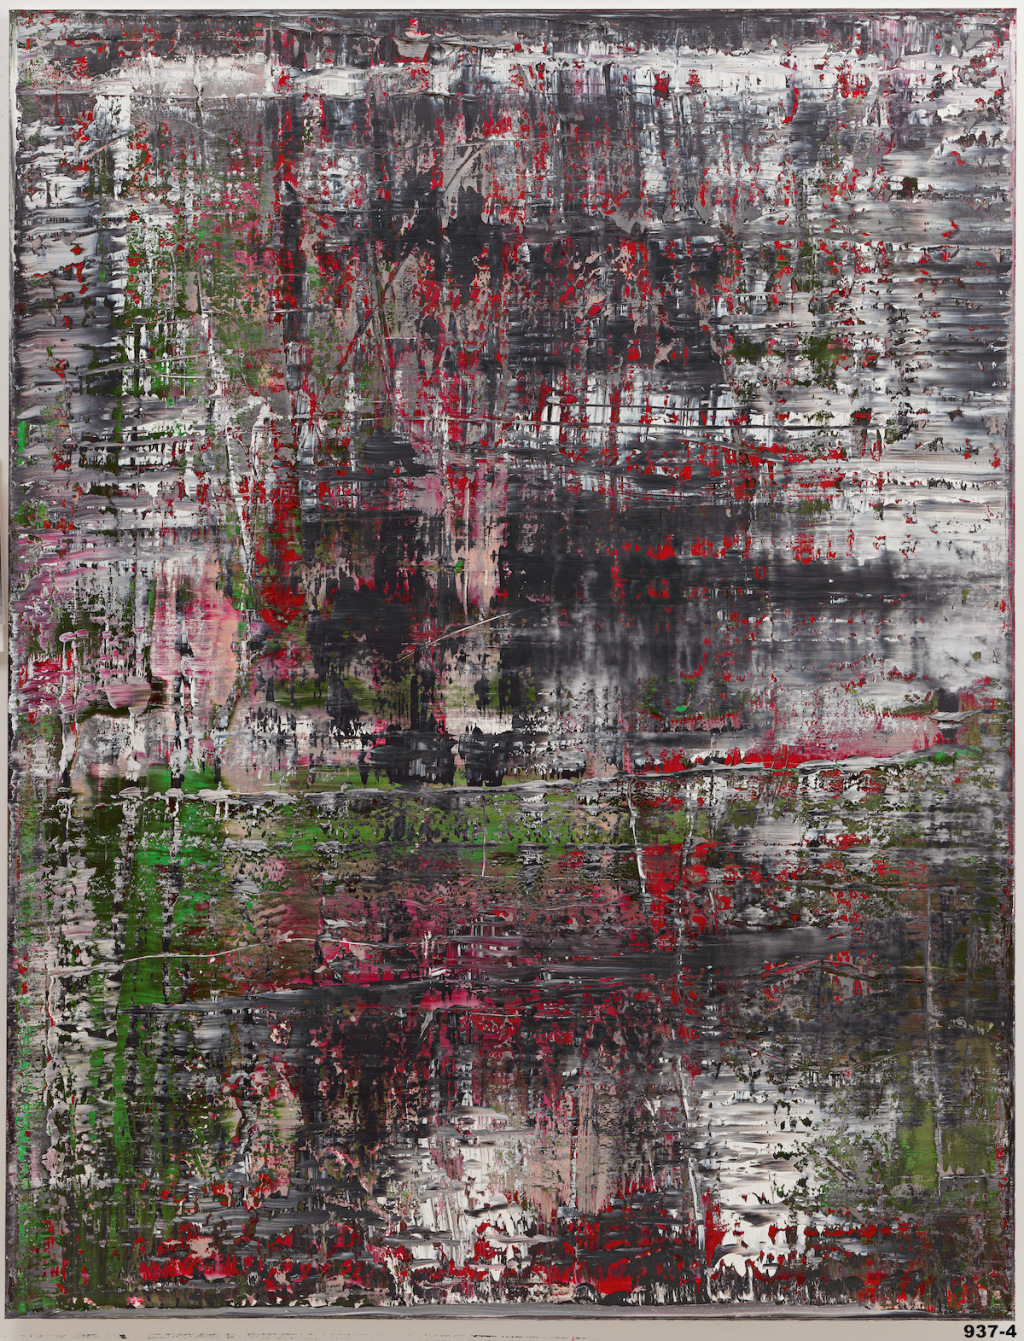 Gerhard Richter Permanently Loans 100 Works to Berlin Museum – ARTnews.com